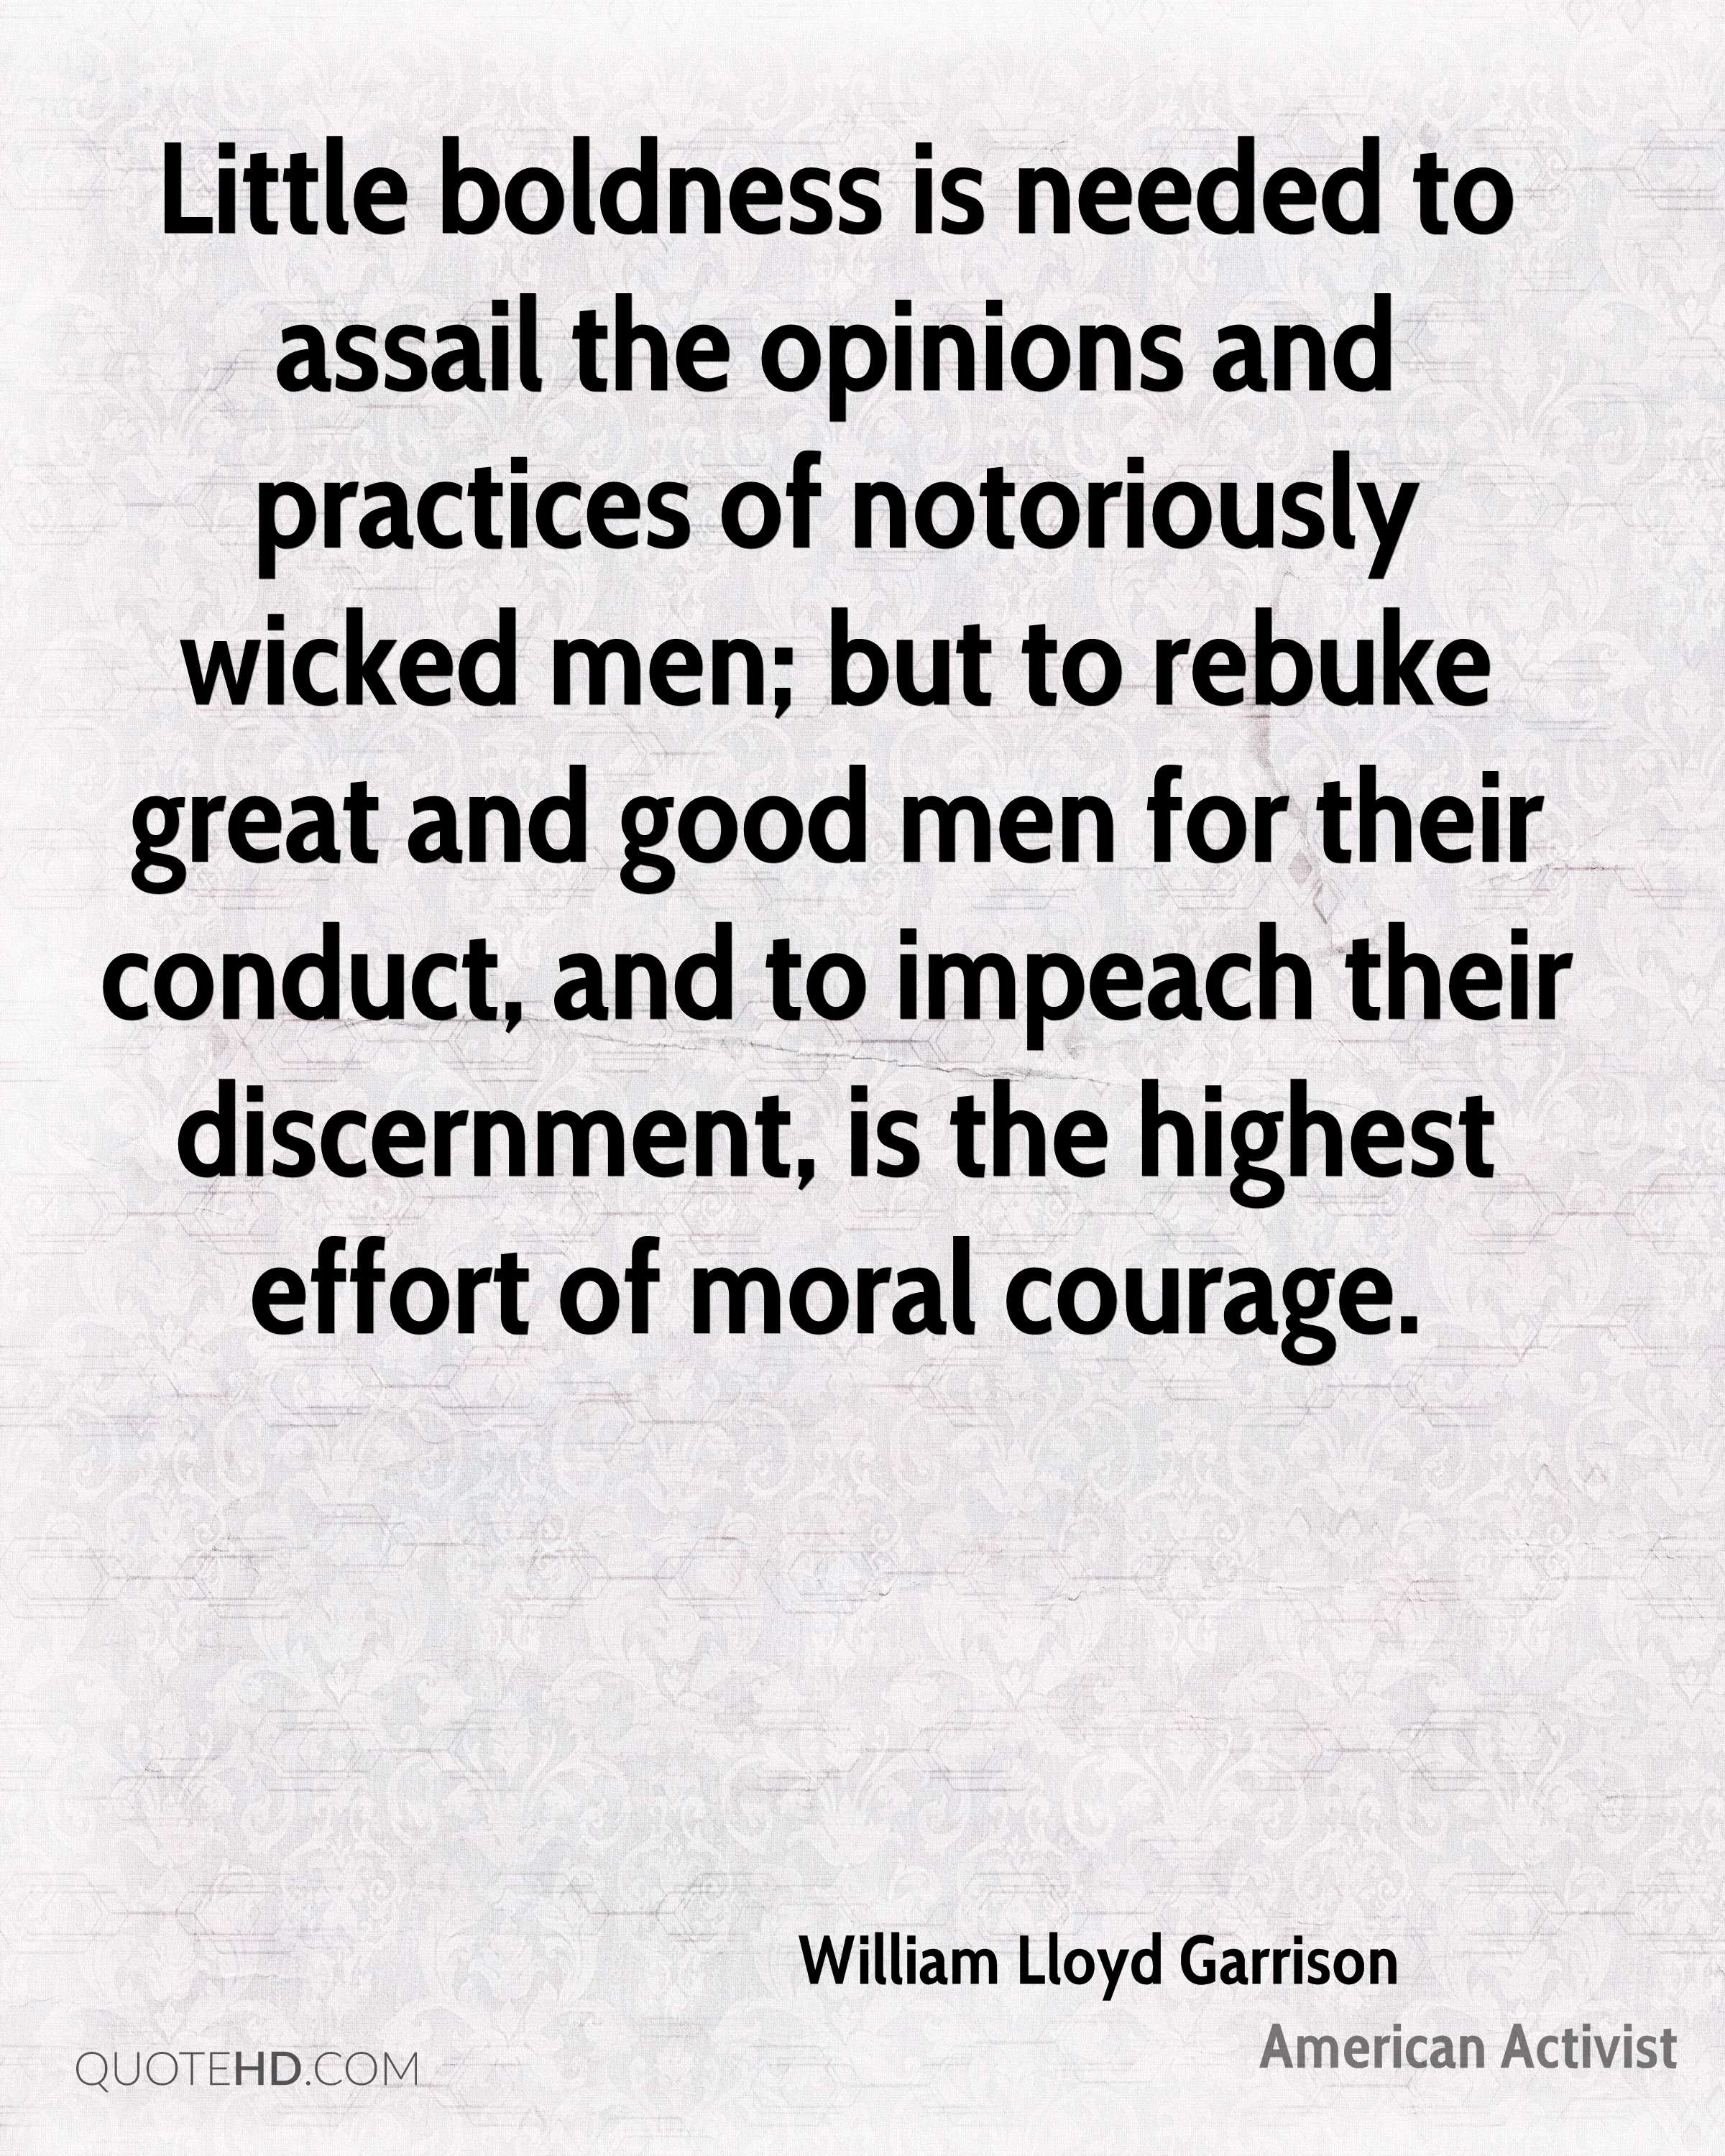 Little boldness is needed to assail the opinions and practices of notoriously wicked men; but to rebuke great and good men for their conduct, and to impeach their discernment, is the highest effort of moral courage.